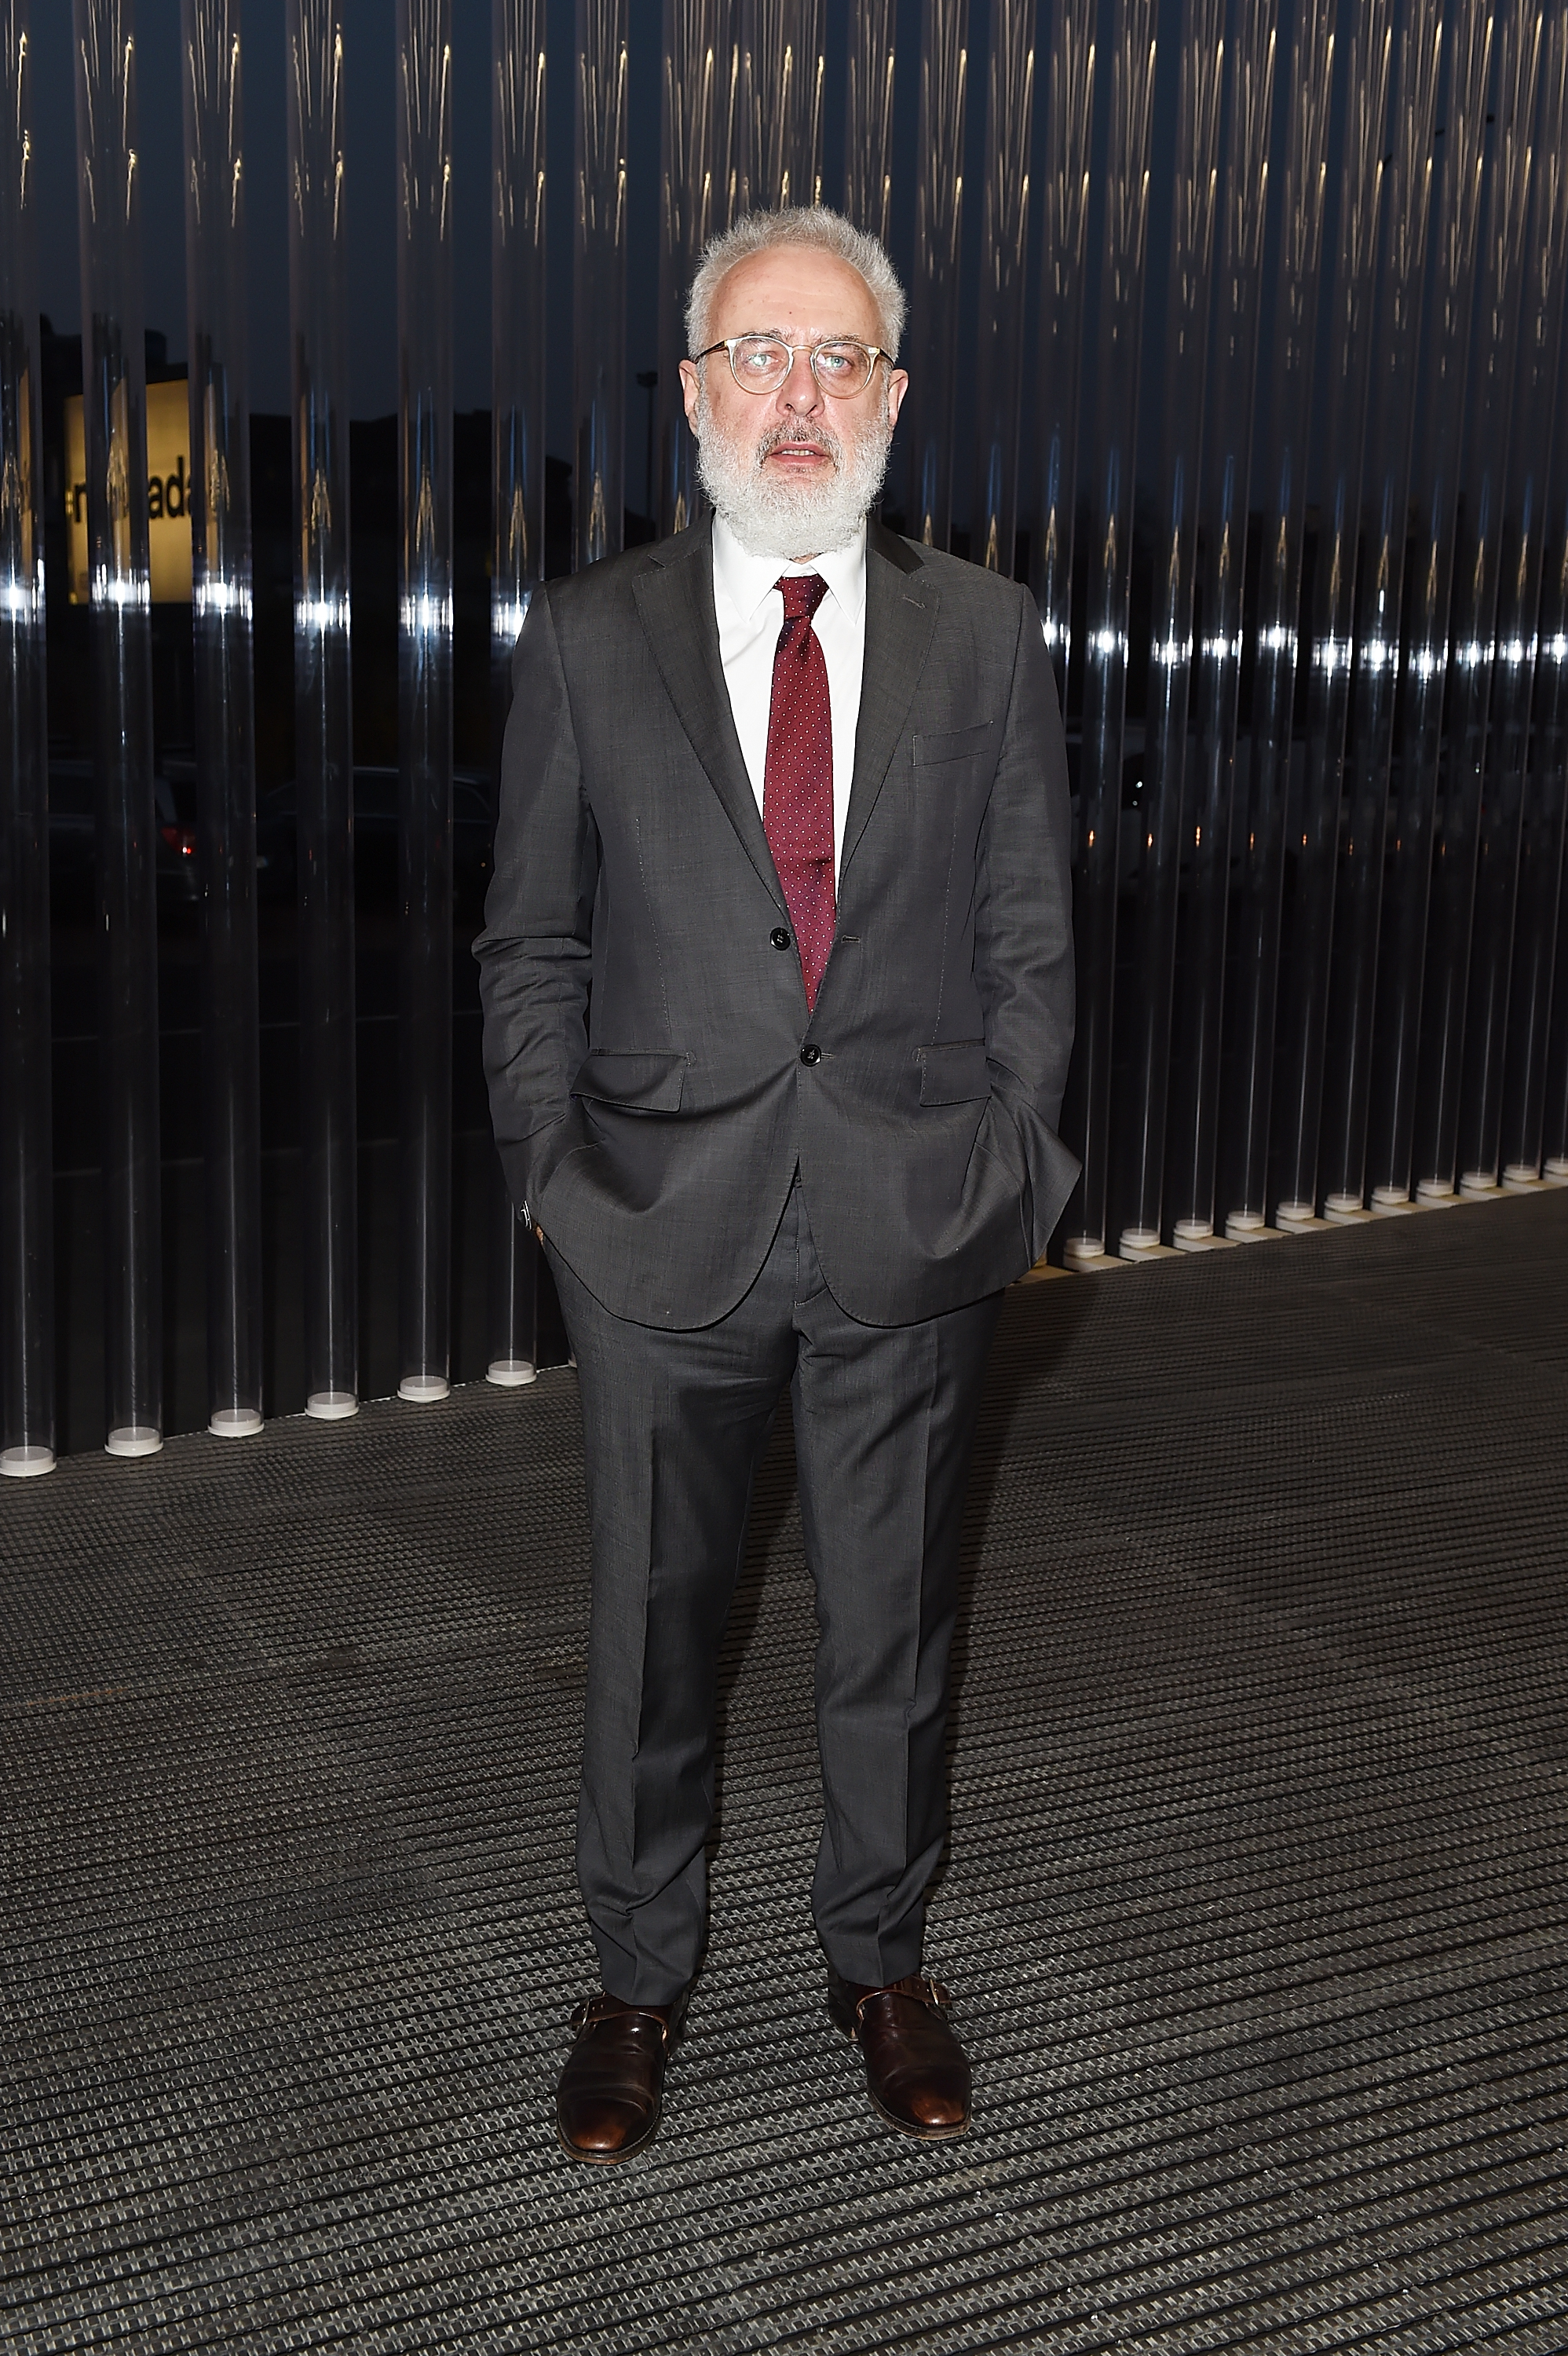 Francesco Bonami à l'inauguration de la Torre à la Fondazione Prada le 18 avril 2018 à Milan, Italie. (Photo by Stefania M. D'Alessandro/Getty Images for Fondazione Prada)